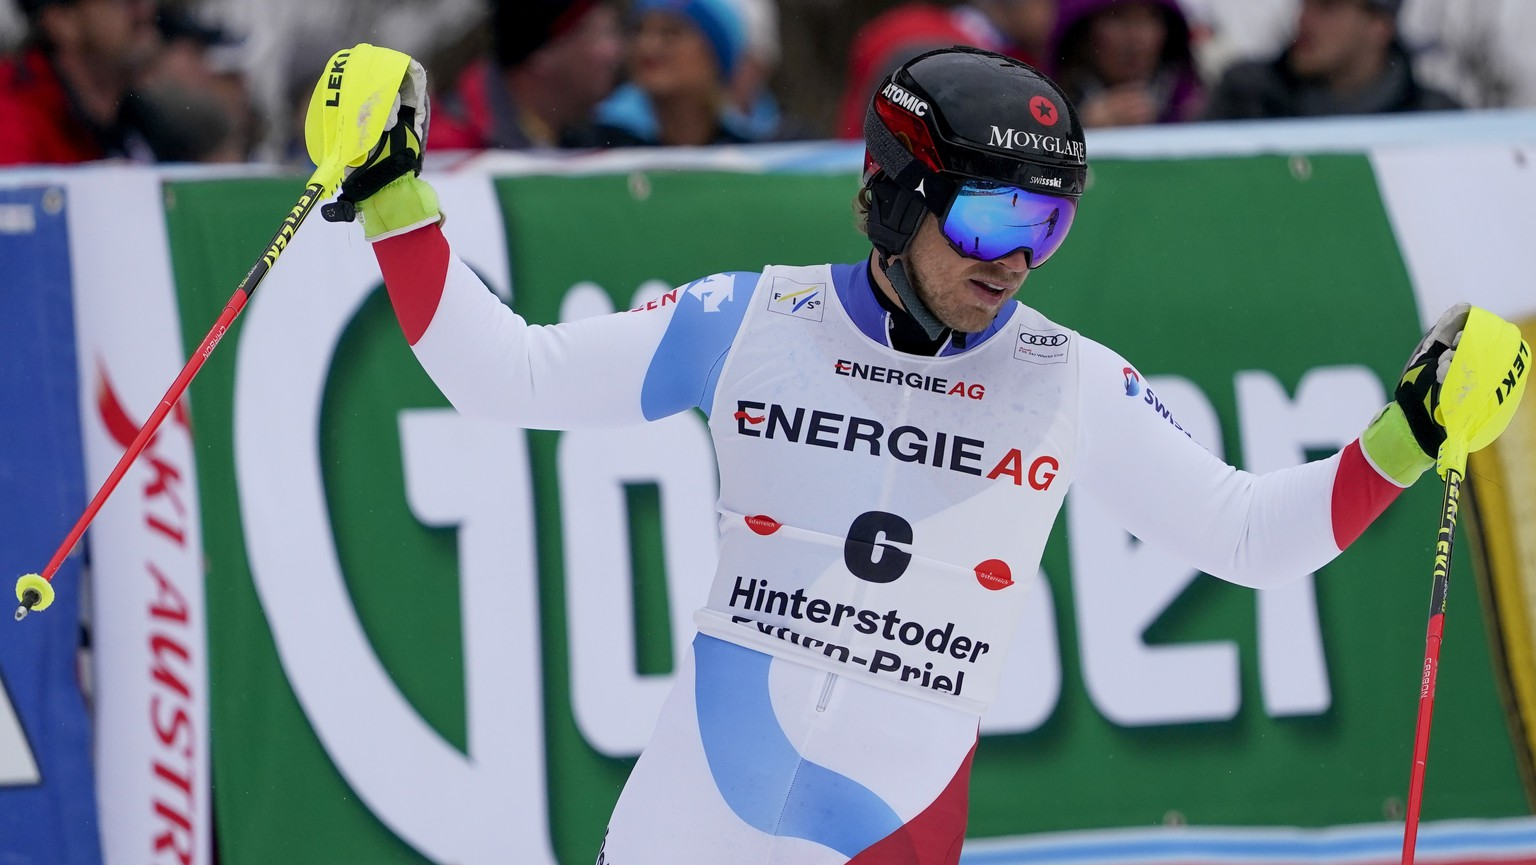 Switzerland's Mauro Caviezel gets to the finish area after completing an alpine ski, men's World Cup combined, in Hinterstoder, Austria, Sunday, March 1, 2020. (AP Photo/Giovanni Auletta)